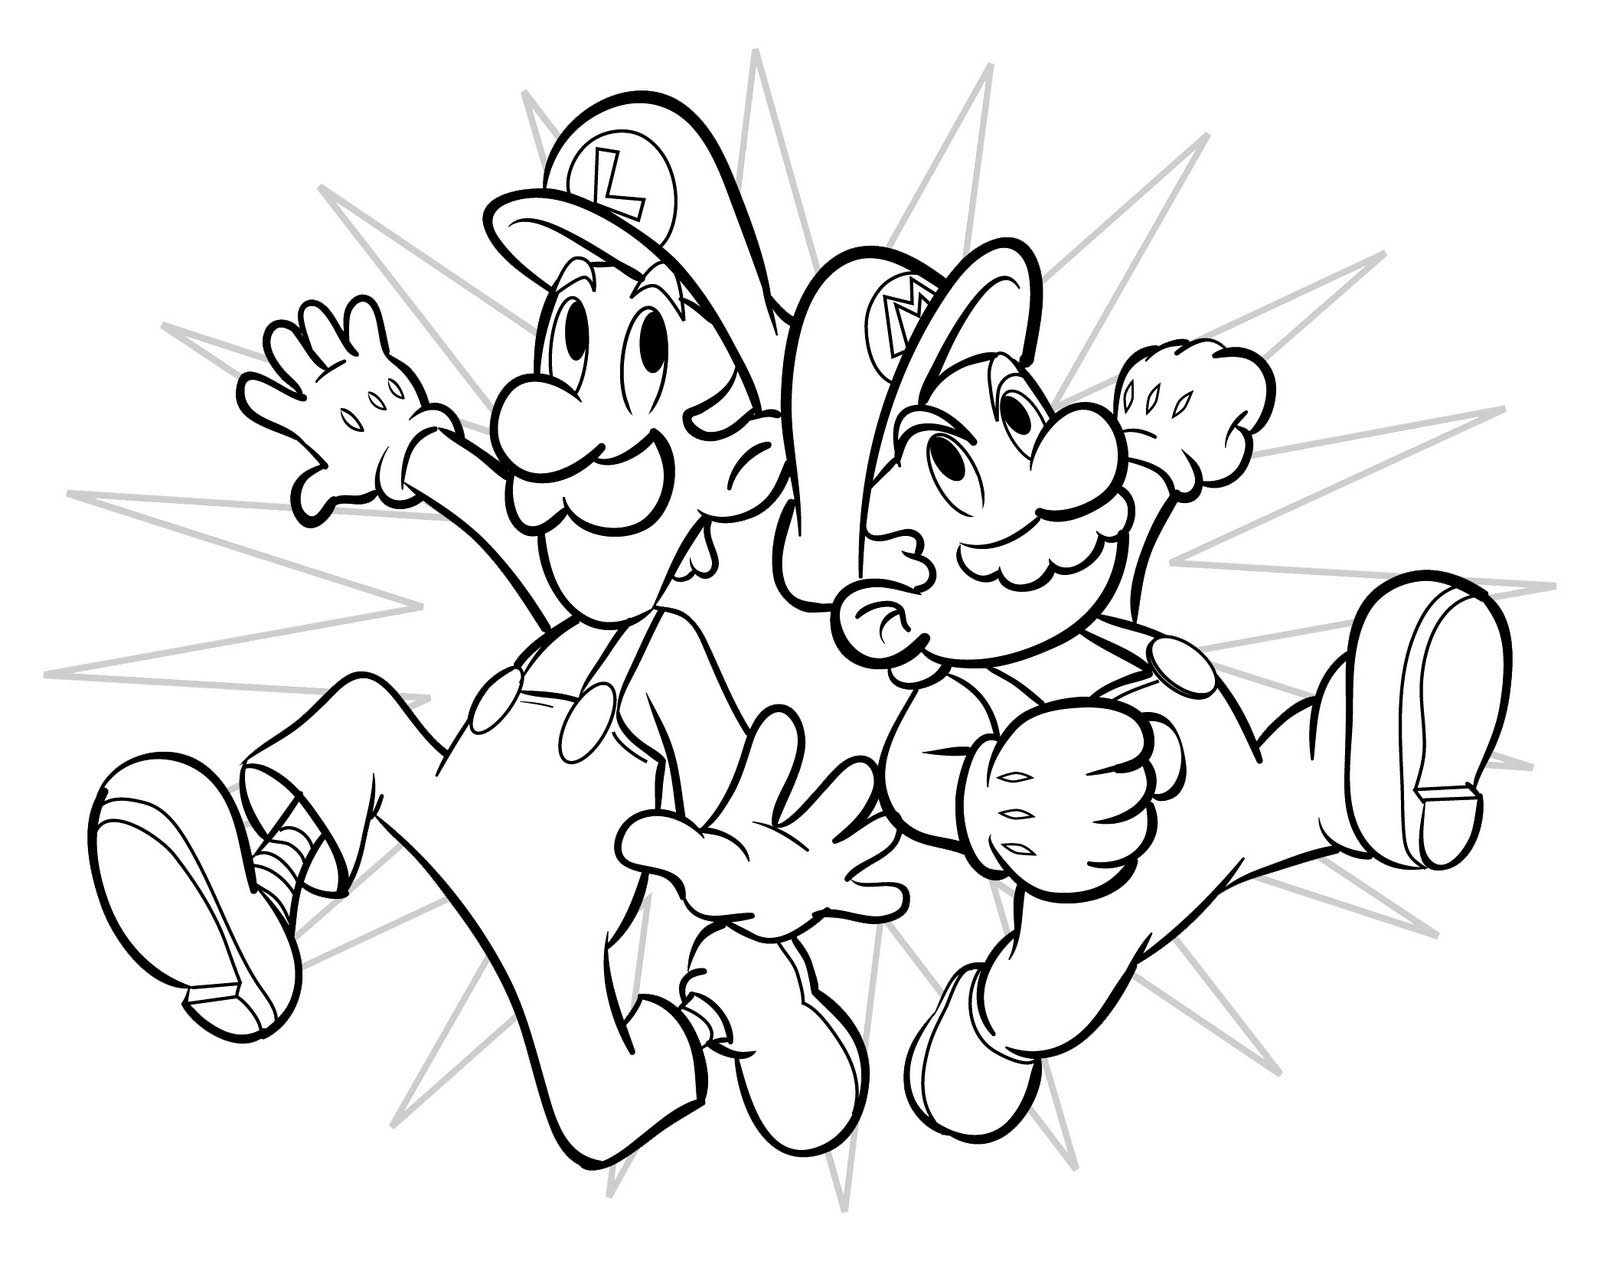 Super Mario Coloring Pages 3